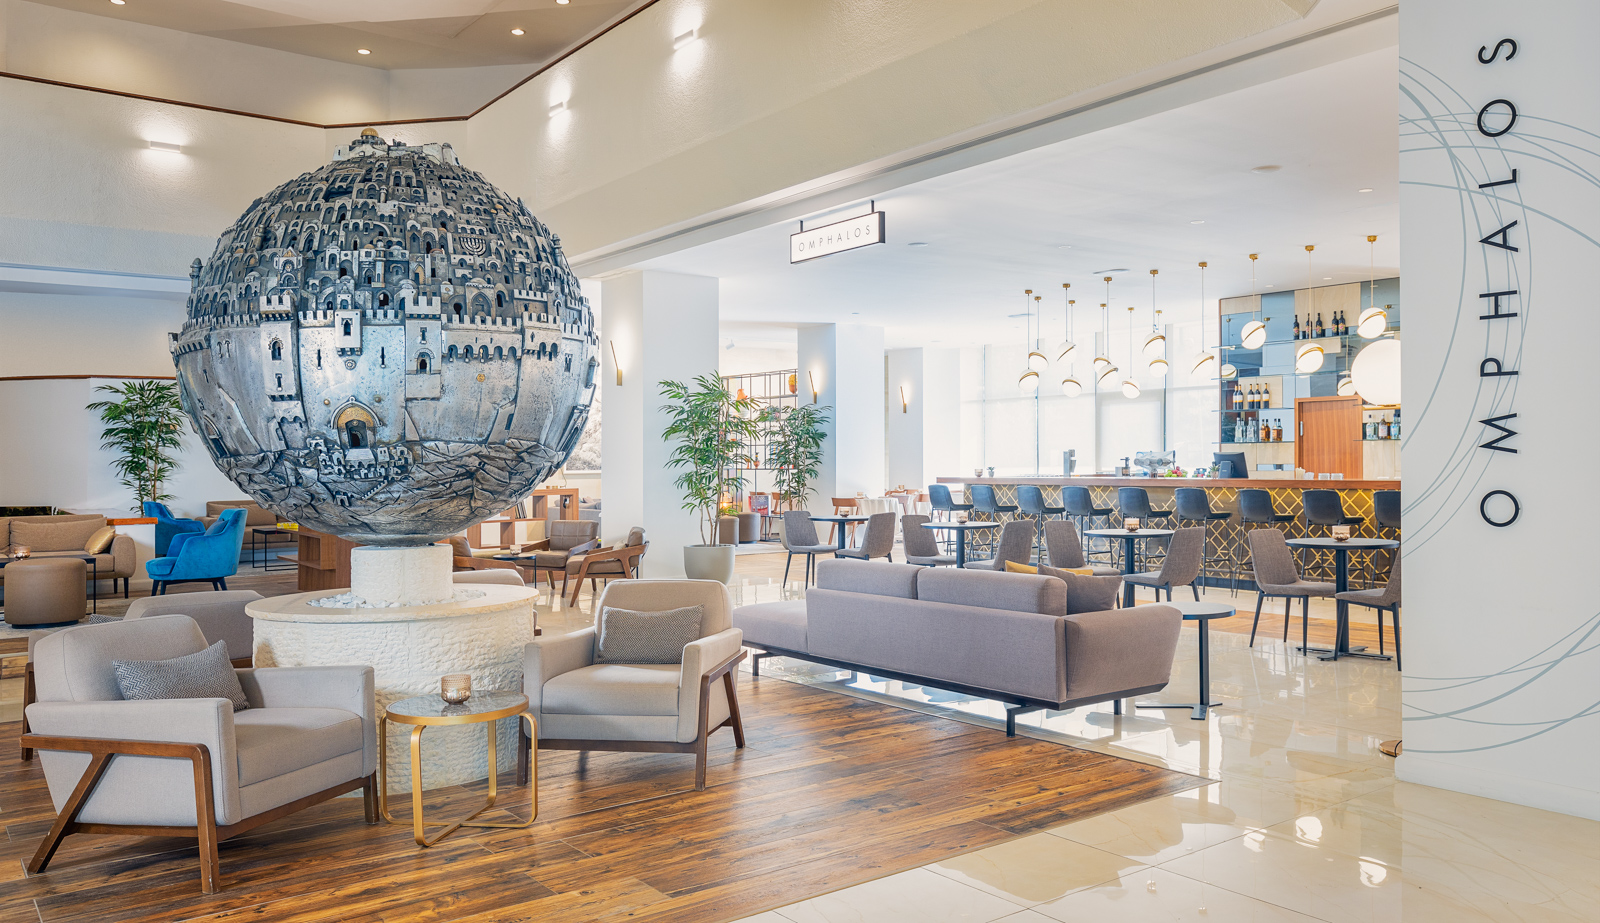 Lobby of the King Solomon Hotel, Jerusalem, with a giant silver globe of Jerusalem in the center of the lobby